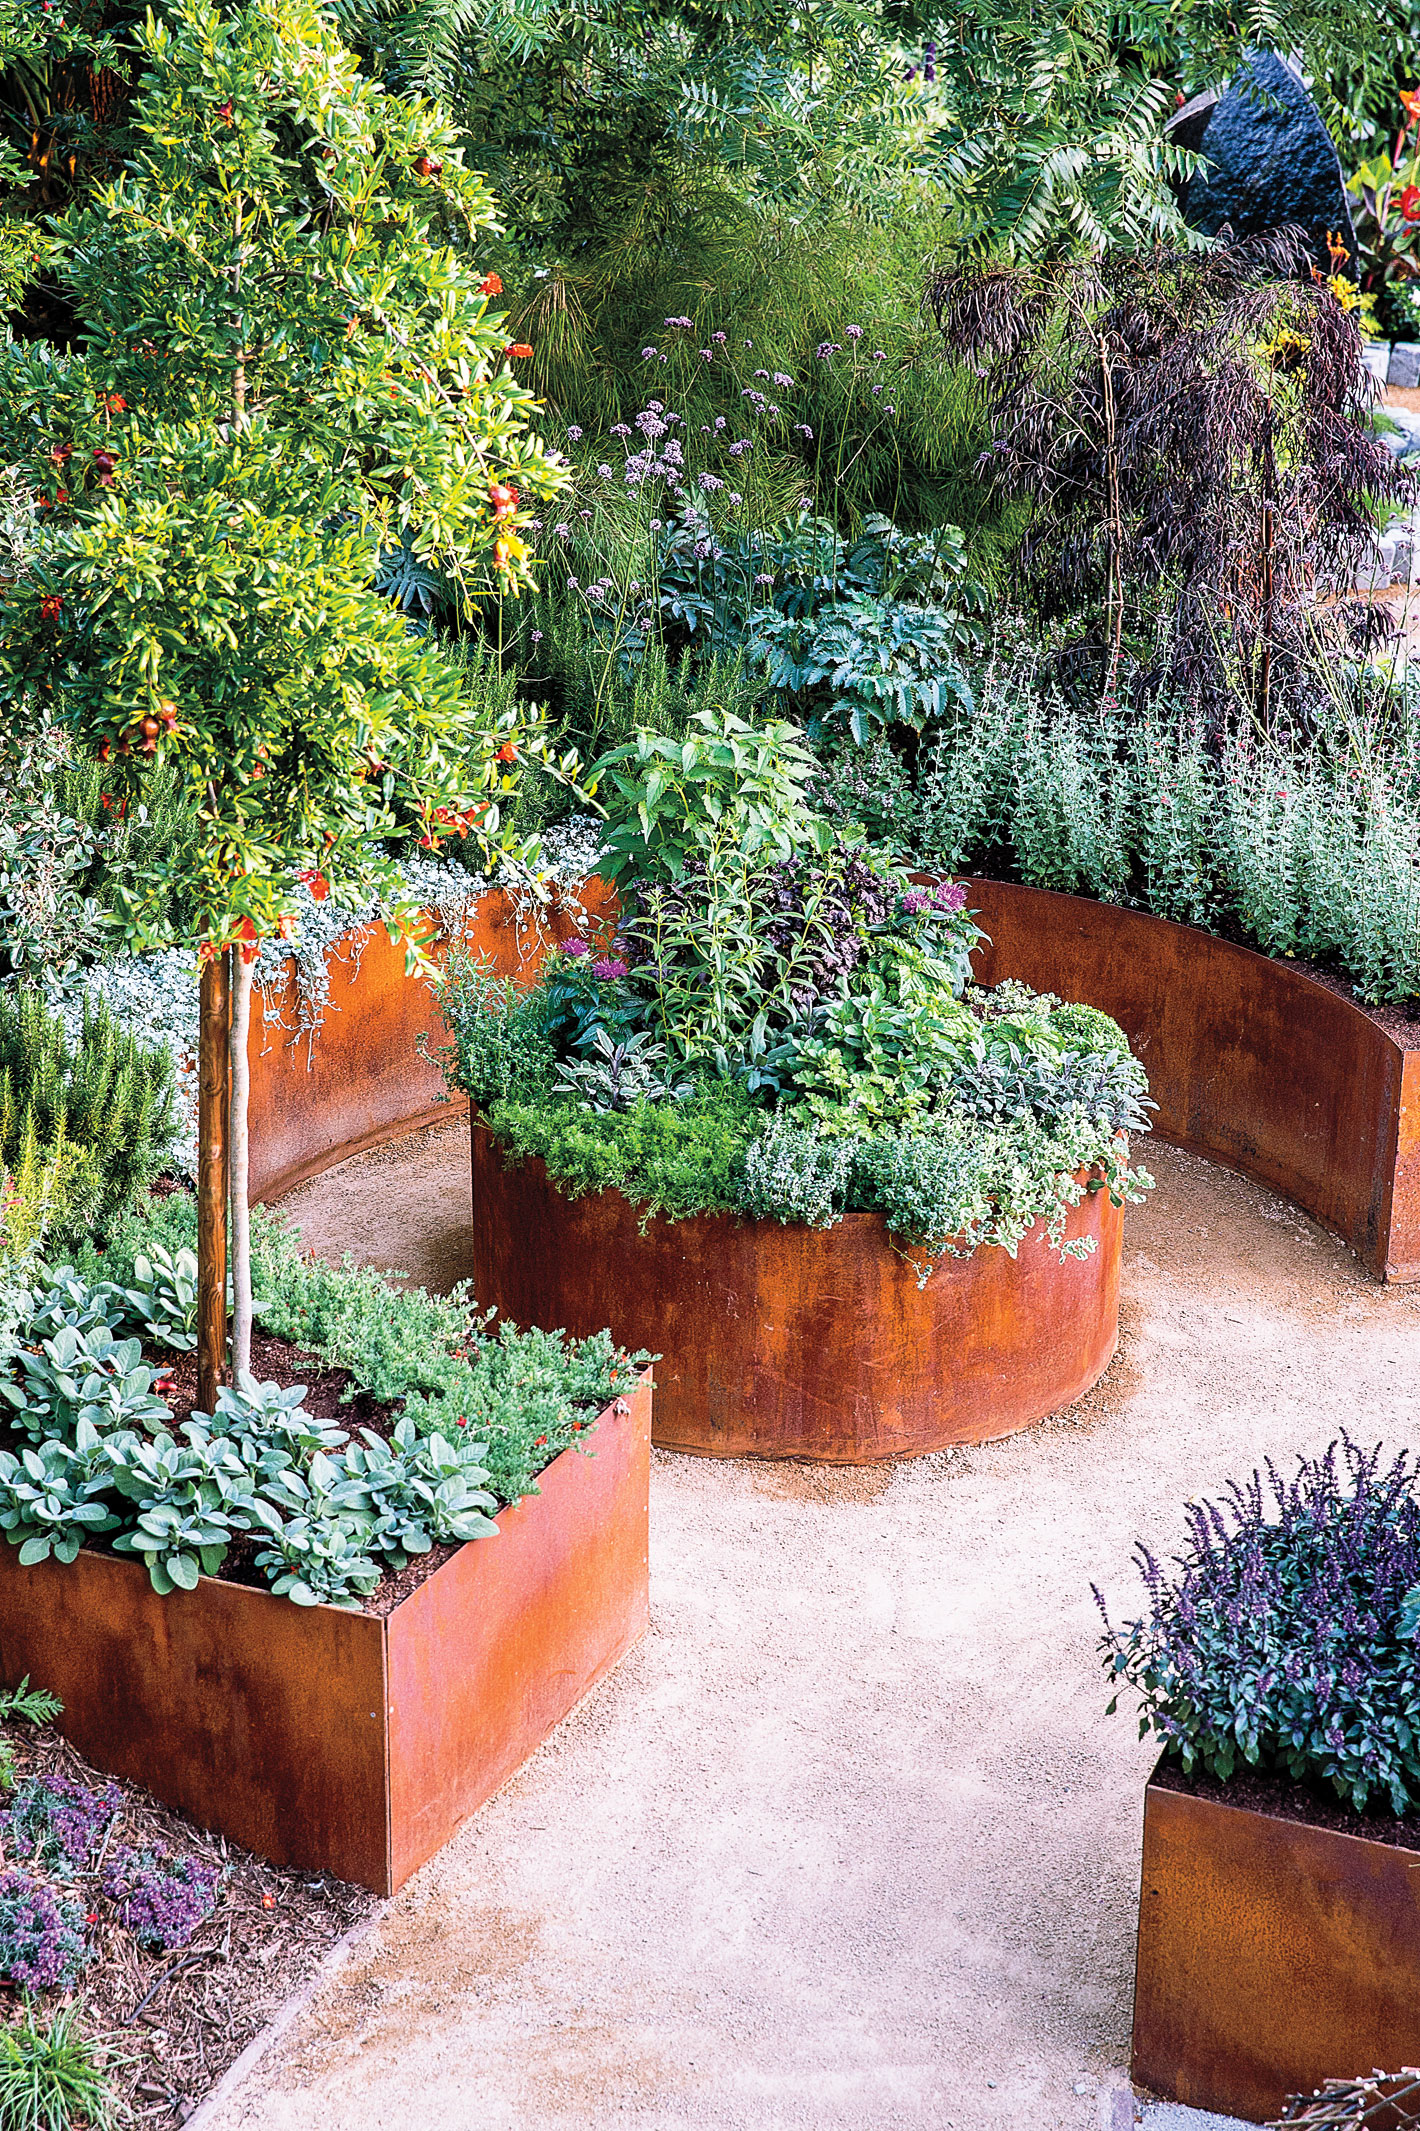 Vegetable Garden Idea 10 Design Ideas for a Tiny Edible Garden